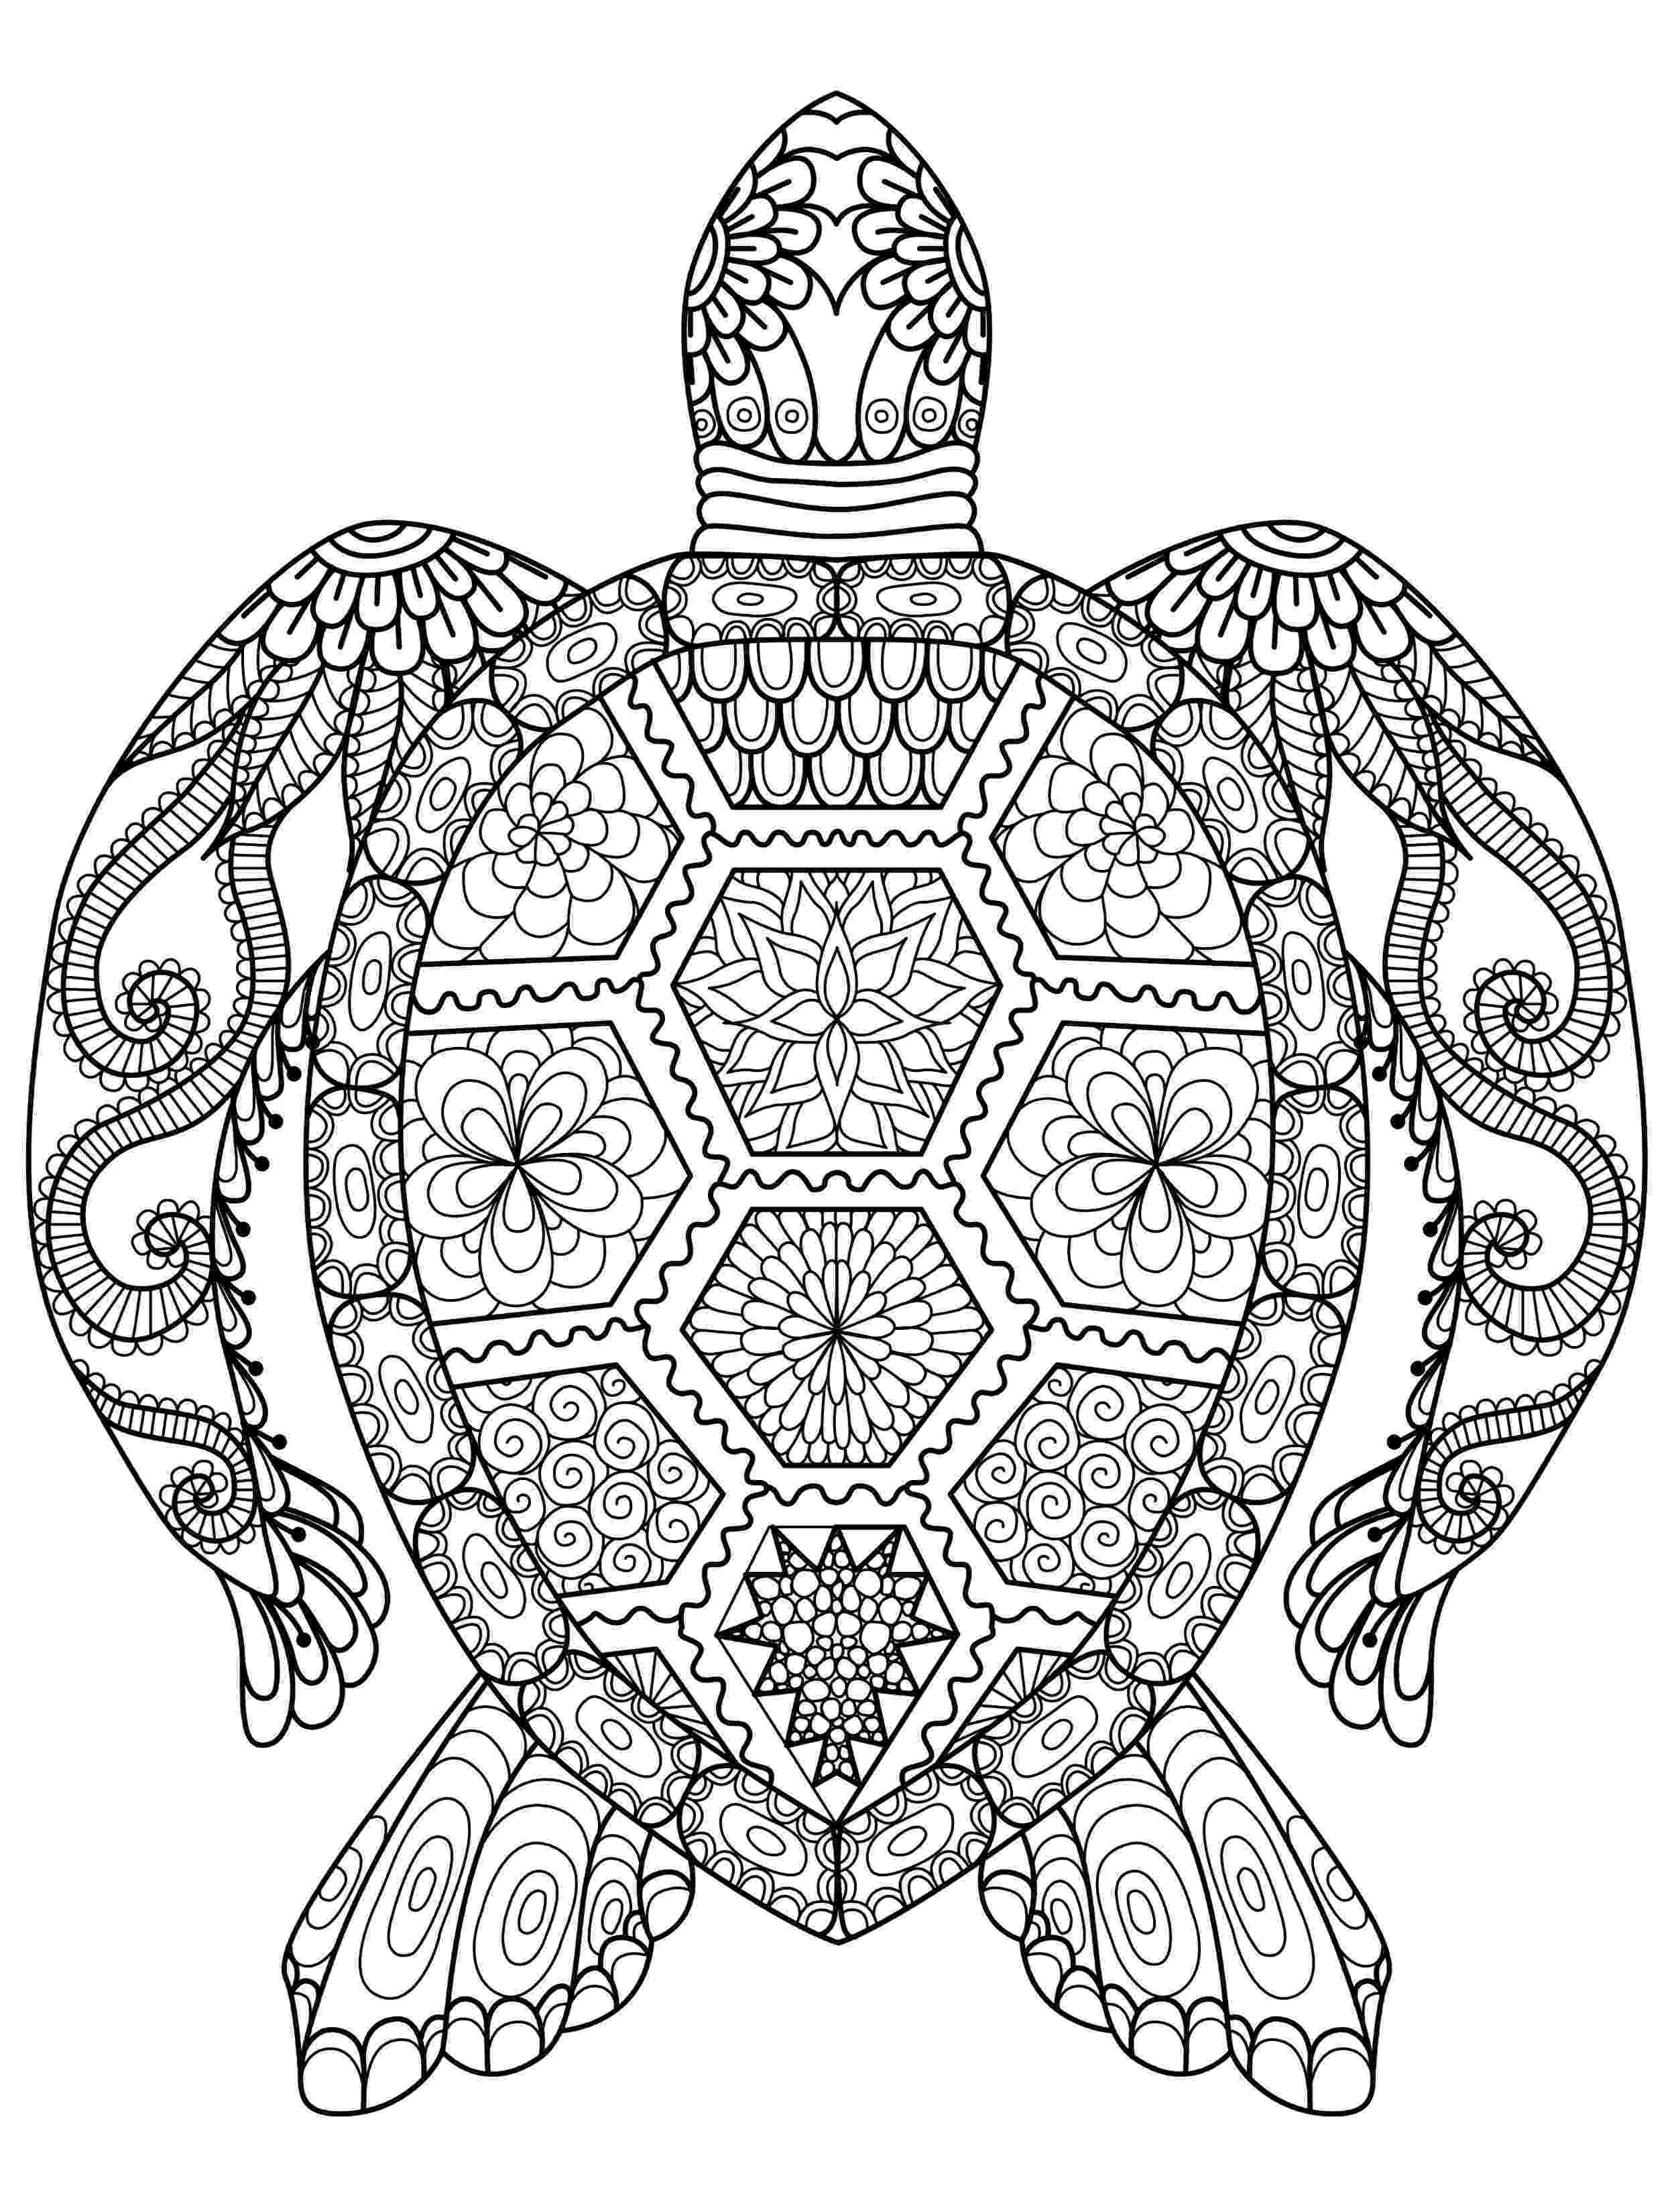 coloring pages of animals all animals coloring pages download and print for free of coloring animals pages